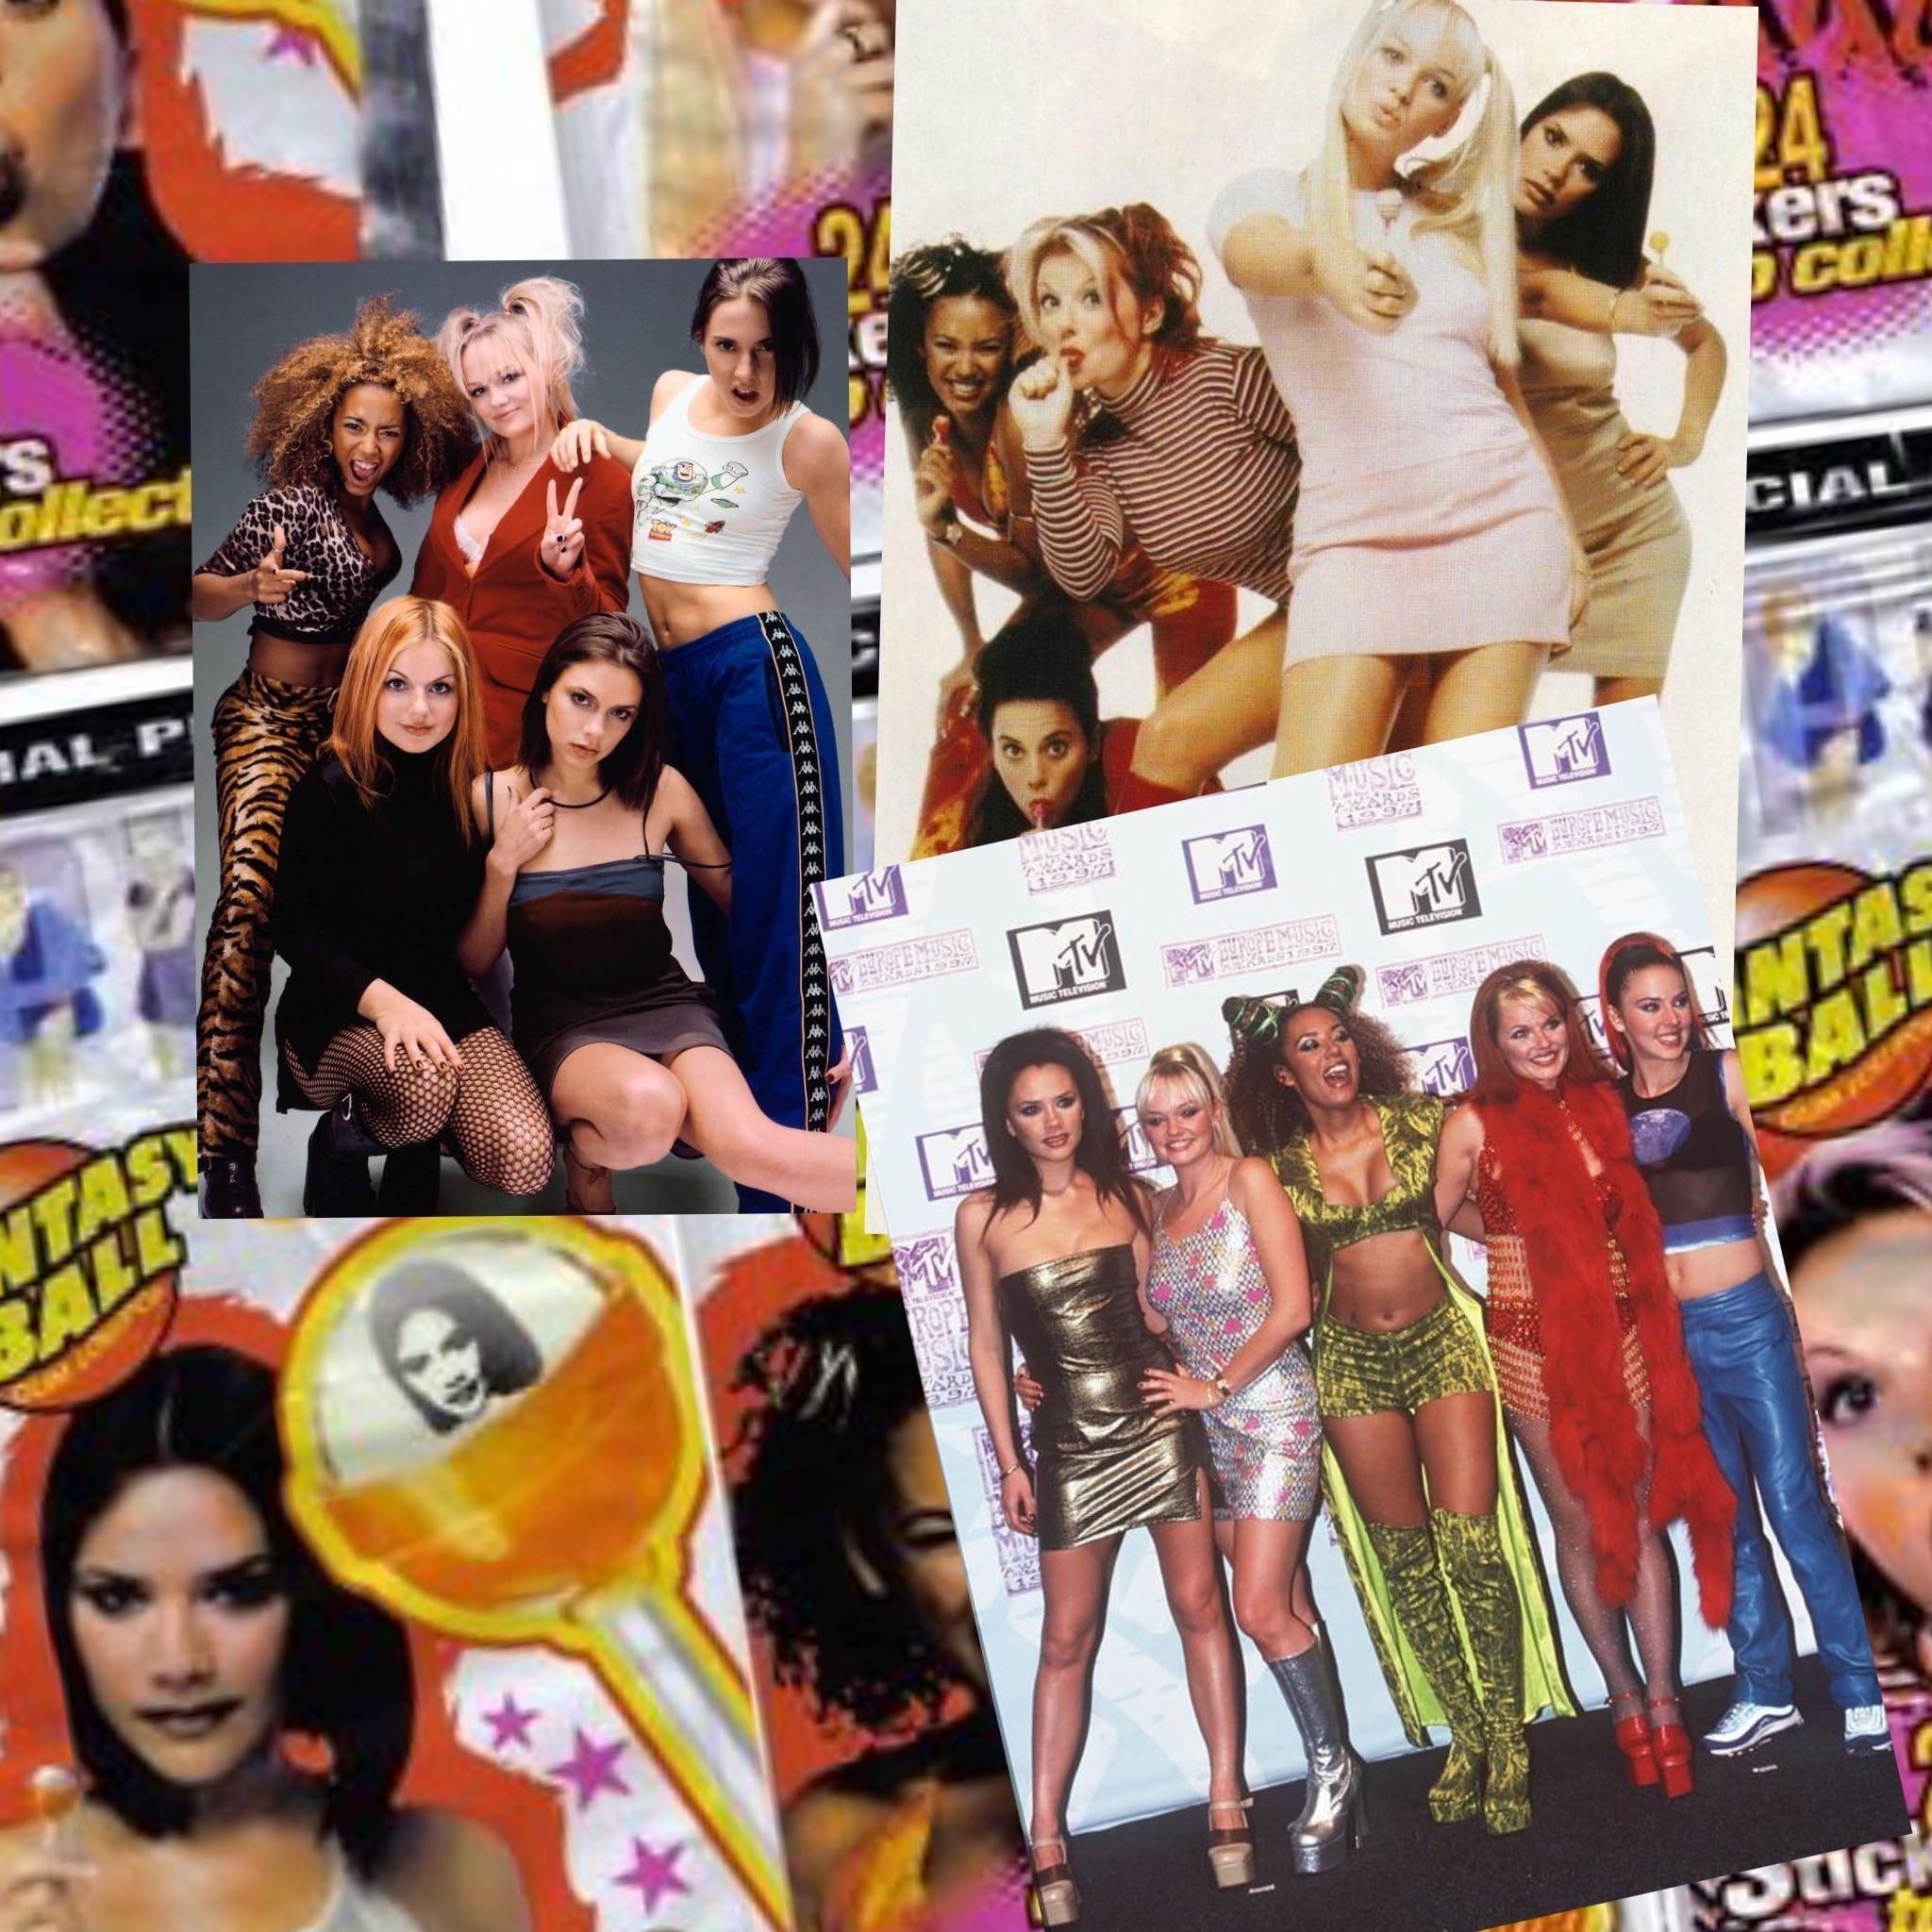 spice girls, reunion spice girls, look stile anni 90, anni 90 tendenze, come vestirsi anni 90, elisa bellino, theladycracy.it, elisa bellino, fashion blog italia, fashion blogger italiane,